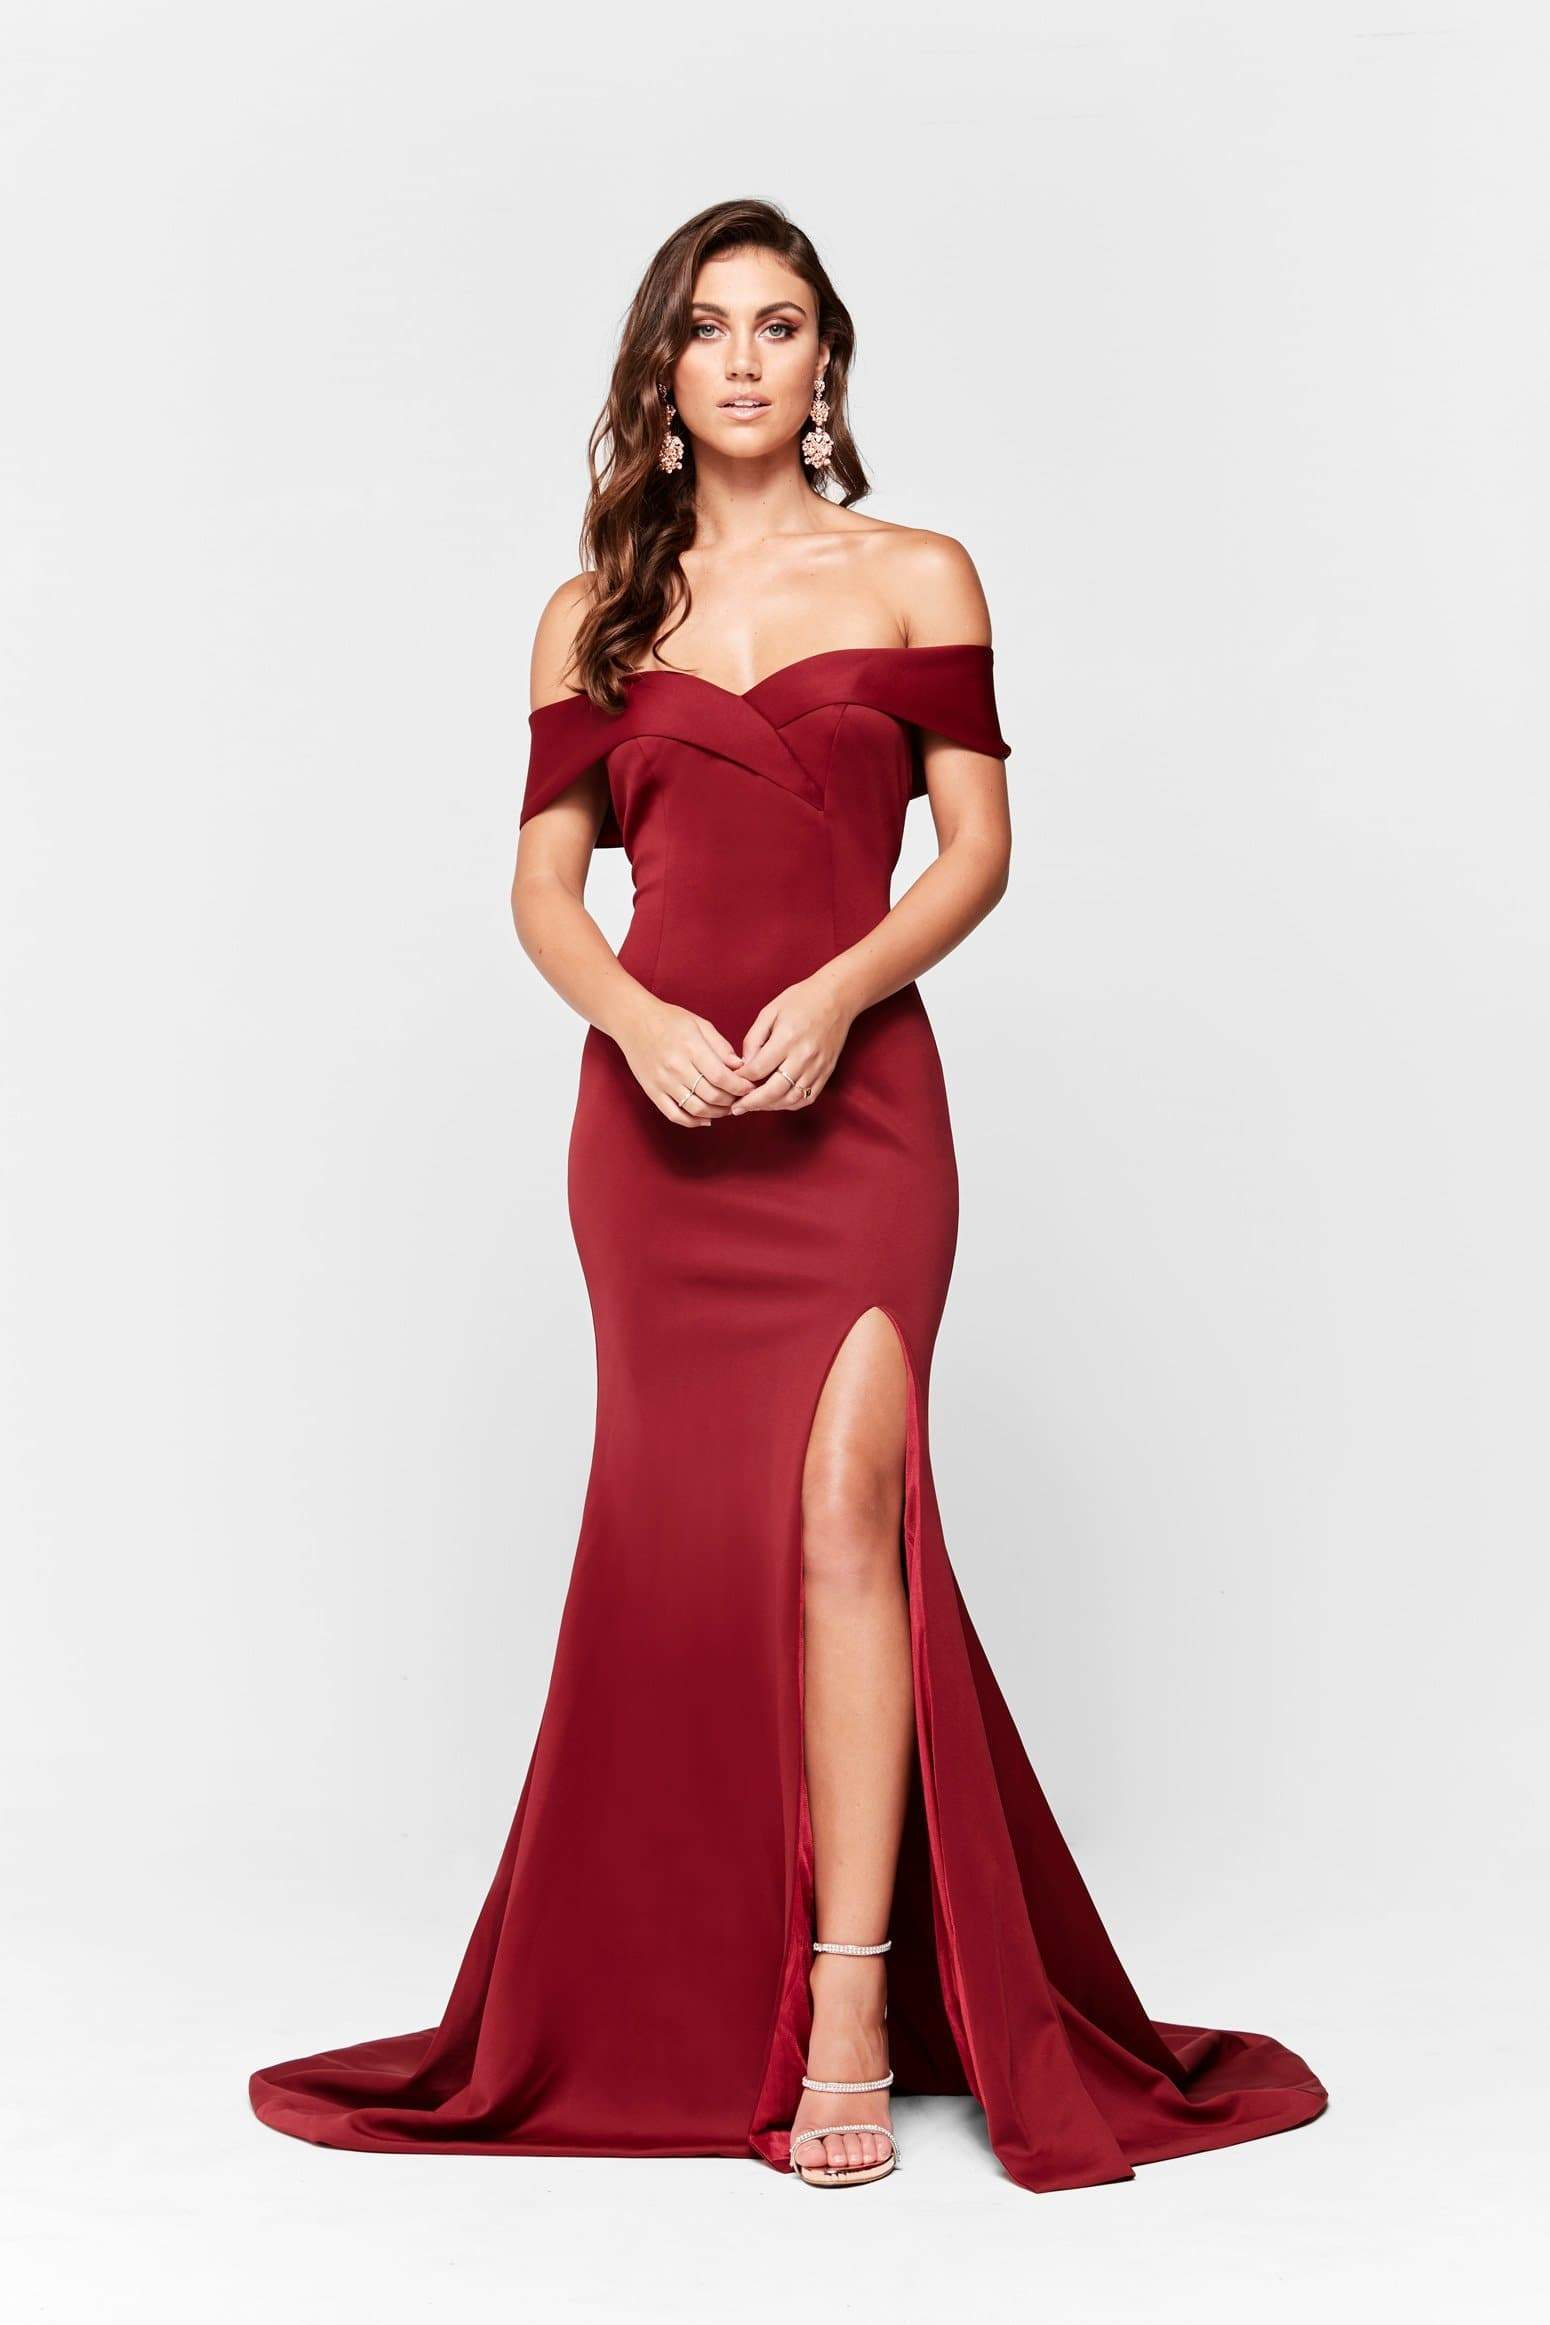 A&N Luxe Ester Off Shoulder Split Ponti Gown - Burgundy Bridesmaids gown prom dress